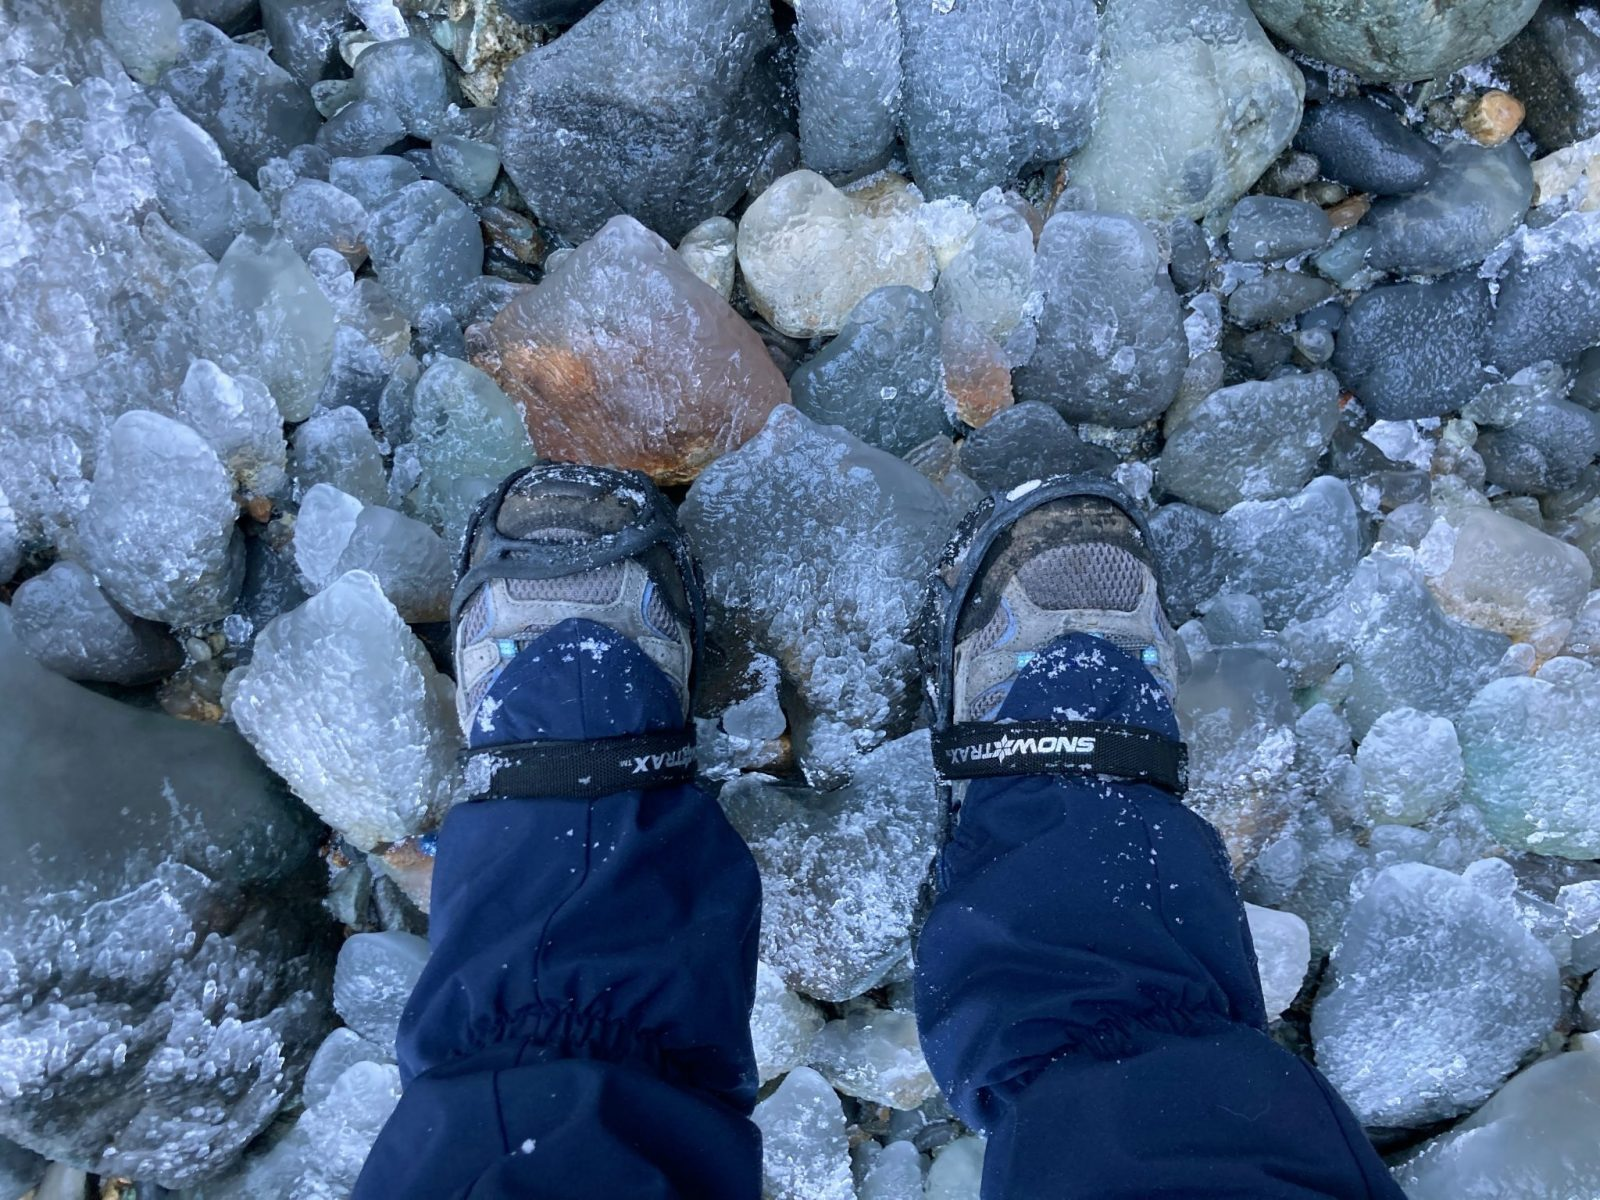 A person's lower legs standing on icy rocks. They are wearing hiking shoes and gaiters and microspikes